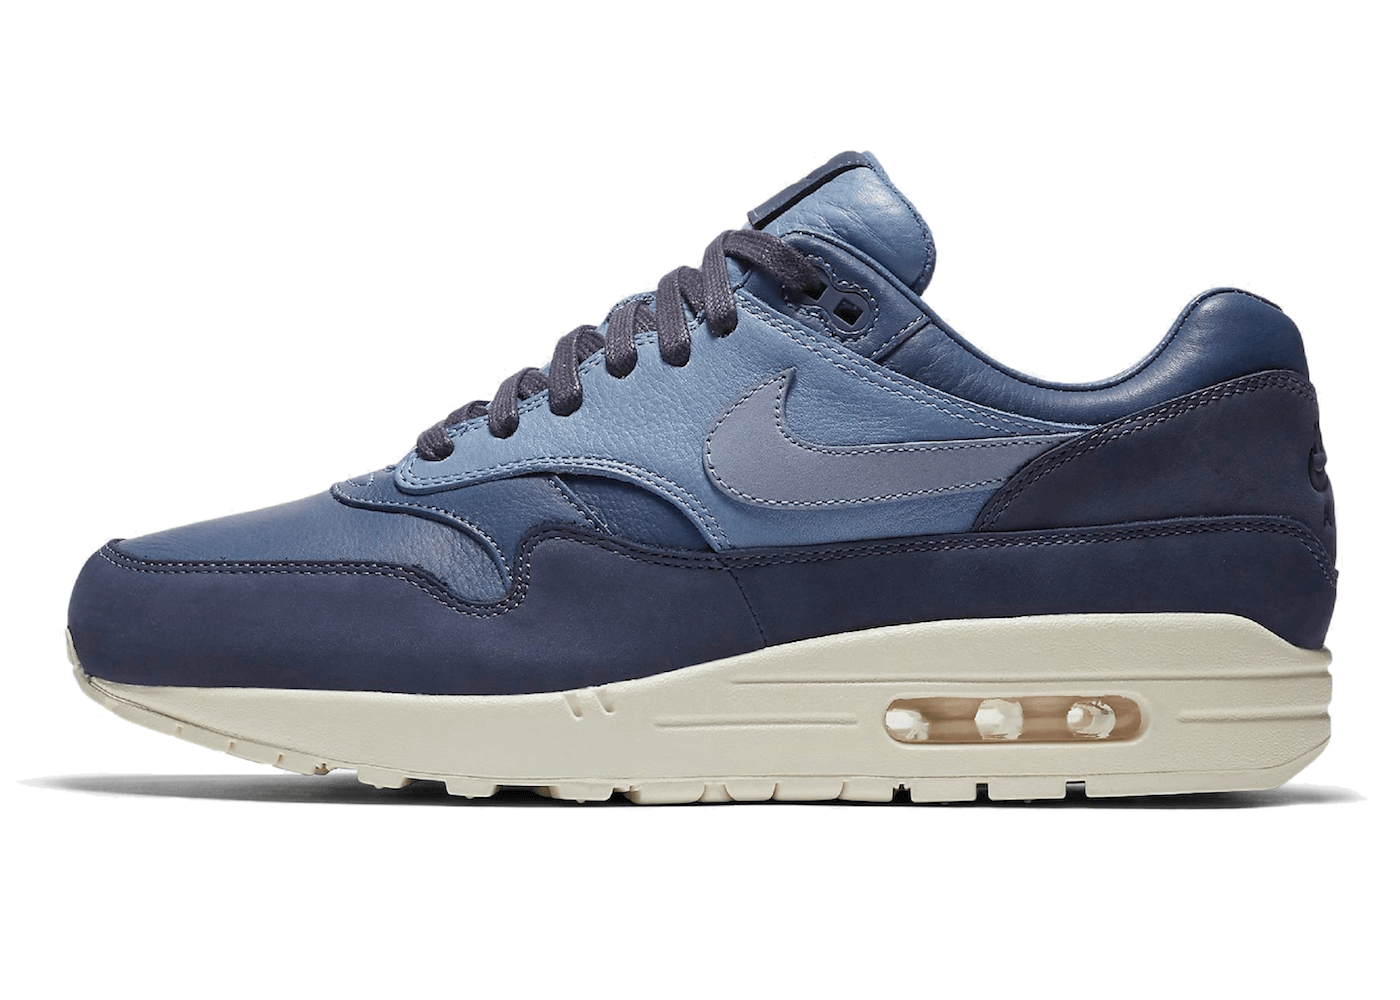 Air Max 1 Pinnacle Ocean Fogの写真